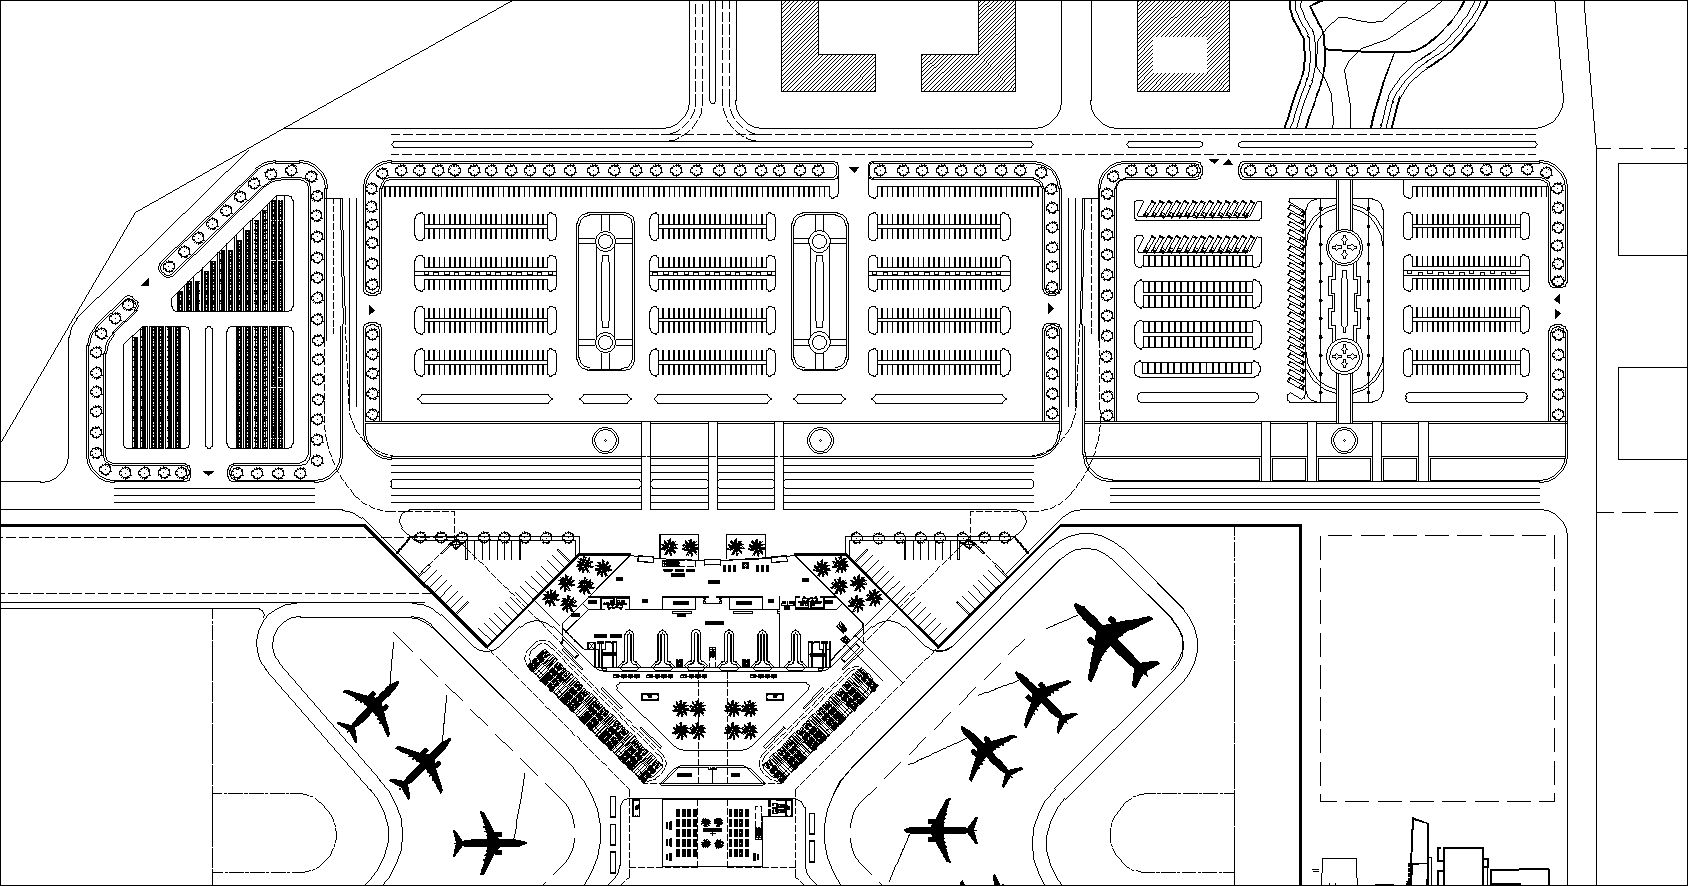 airport design drawings u3011 u2605